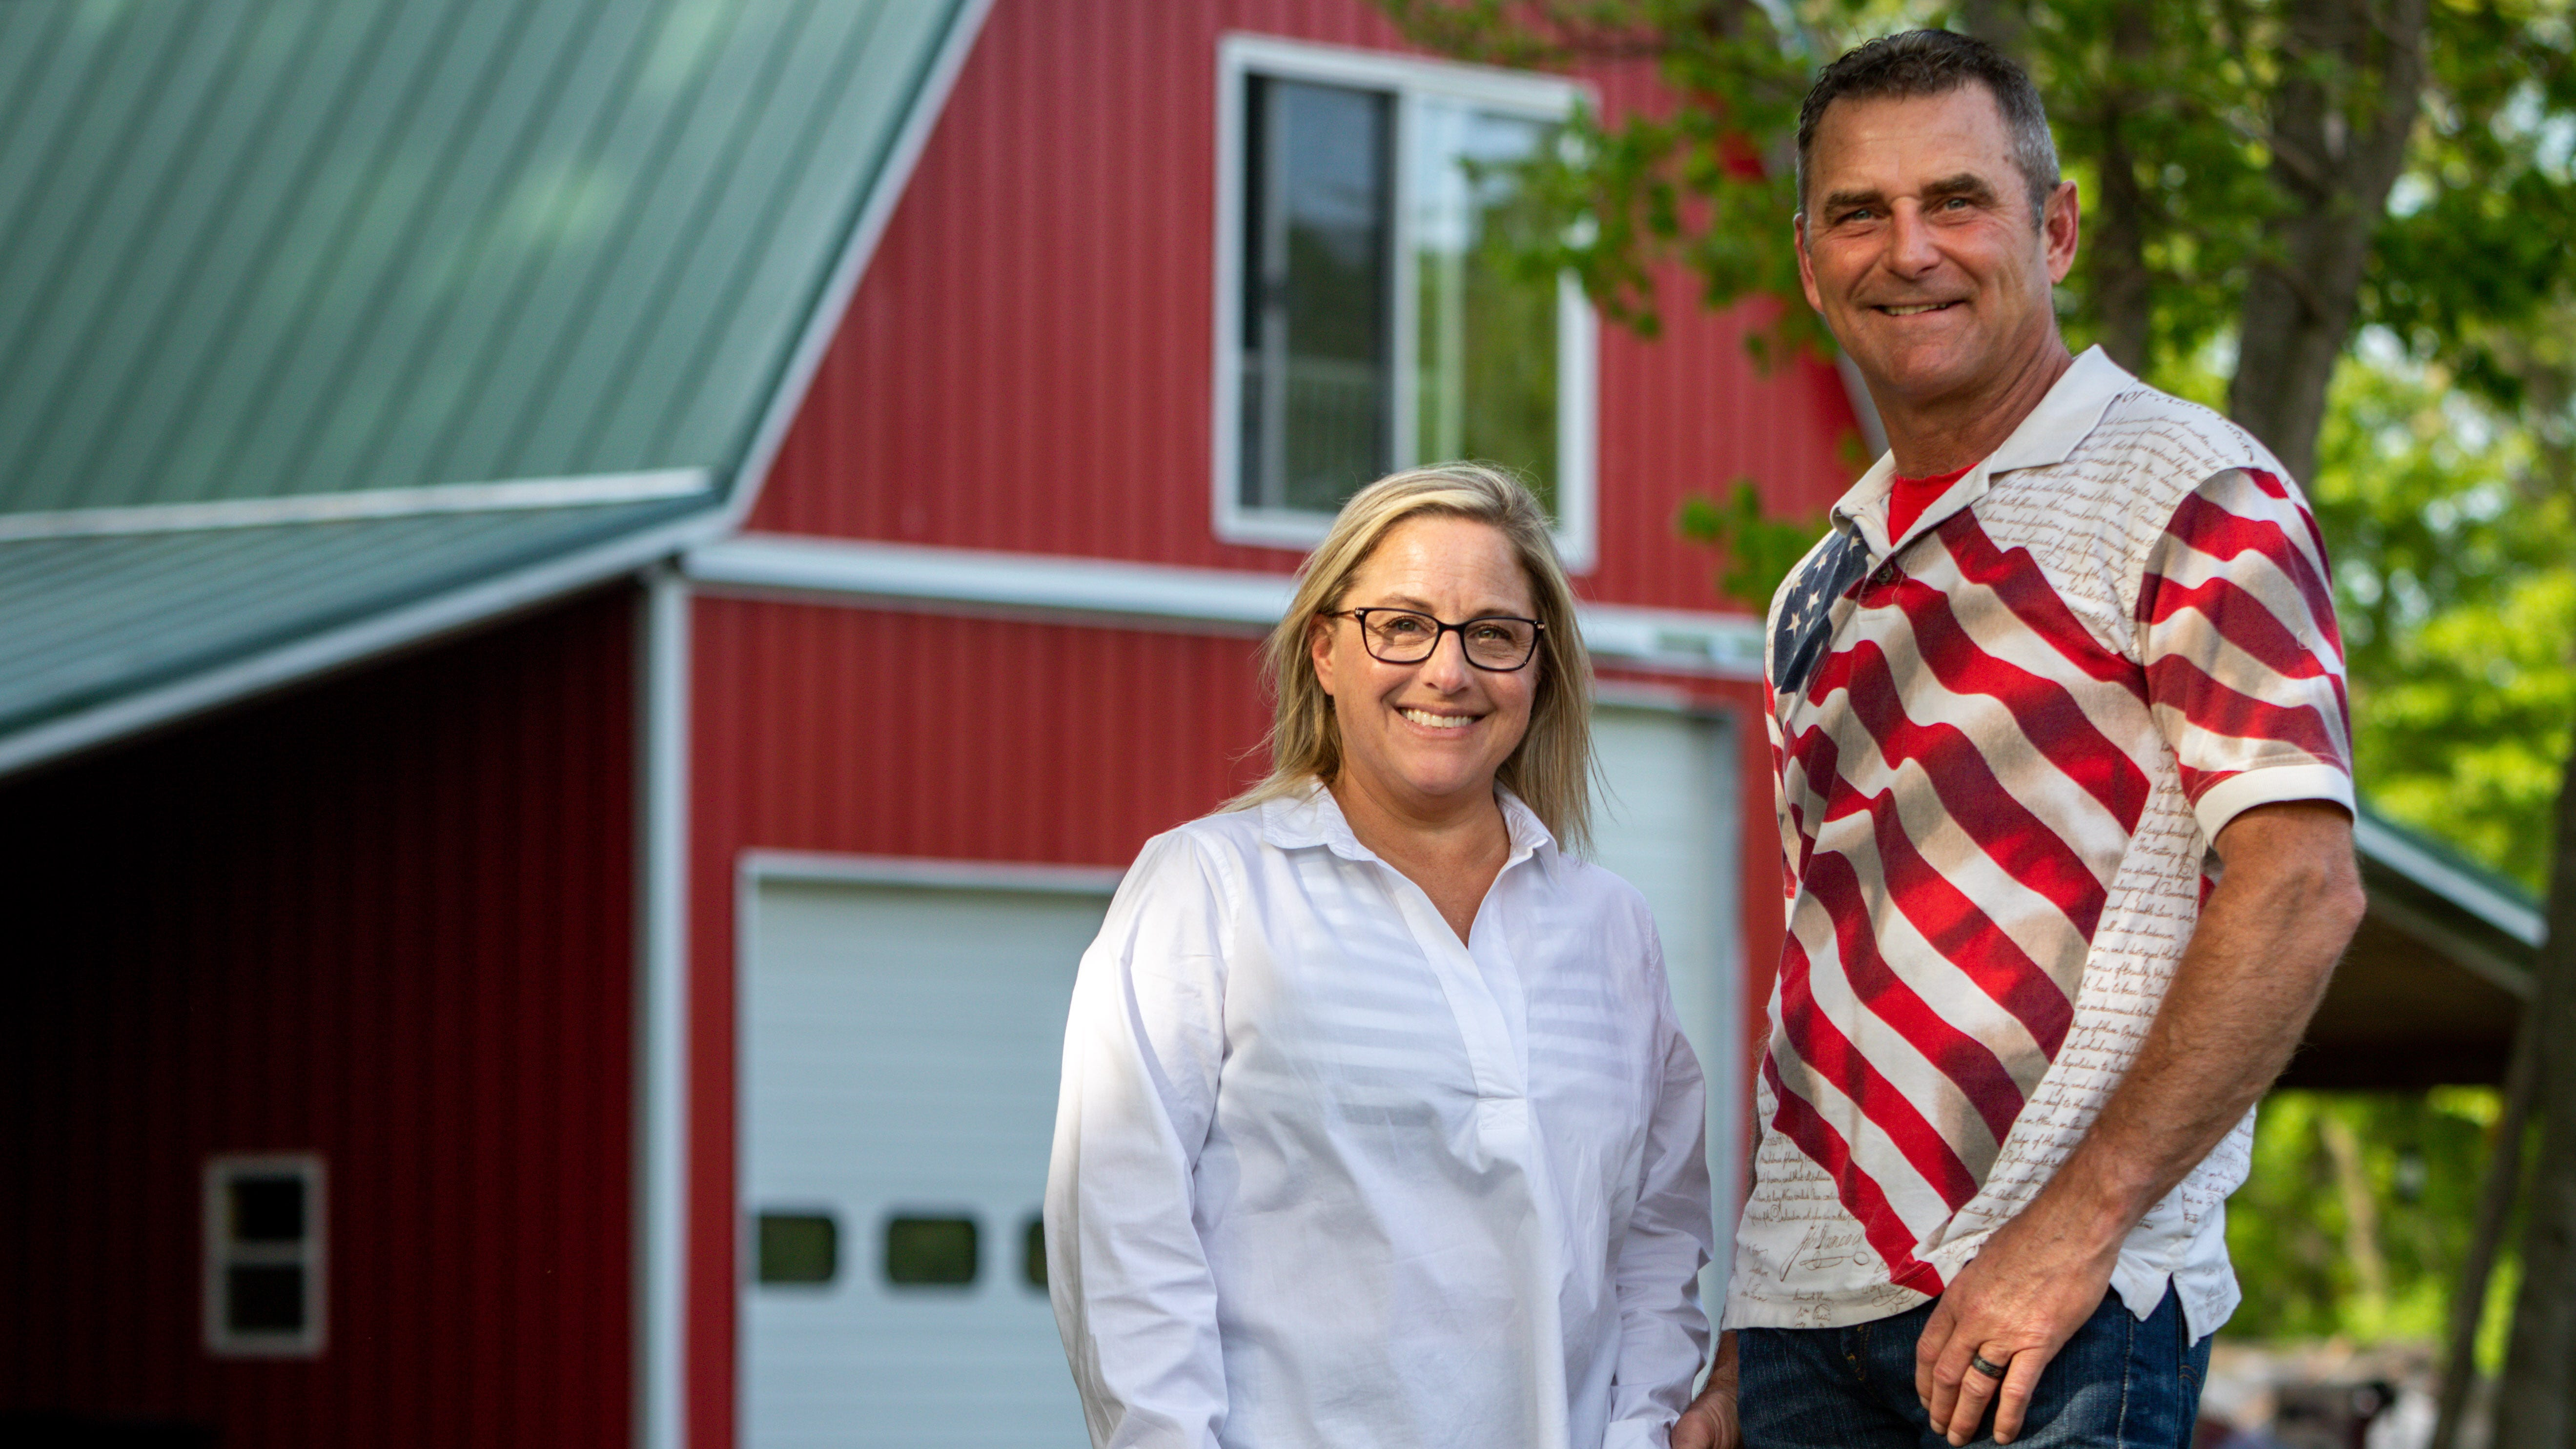 Gerald and Lynnette Keen live in Grand Haven after he retired from the U.S. Army. The Keens are on a mission to help Gerald's former Afghan interpreter get a special immigration visa to come to the U.S. before American forces withdraw from Afghanistan.